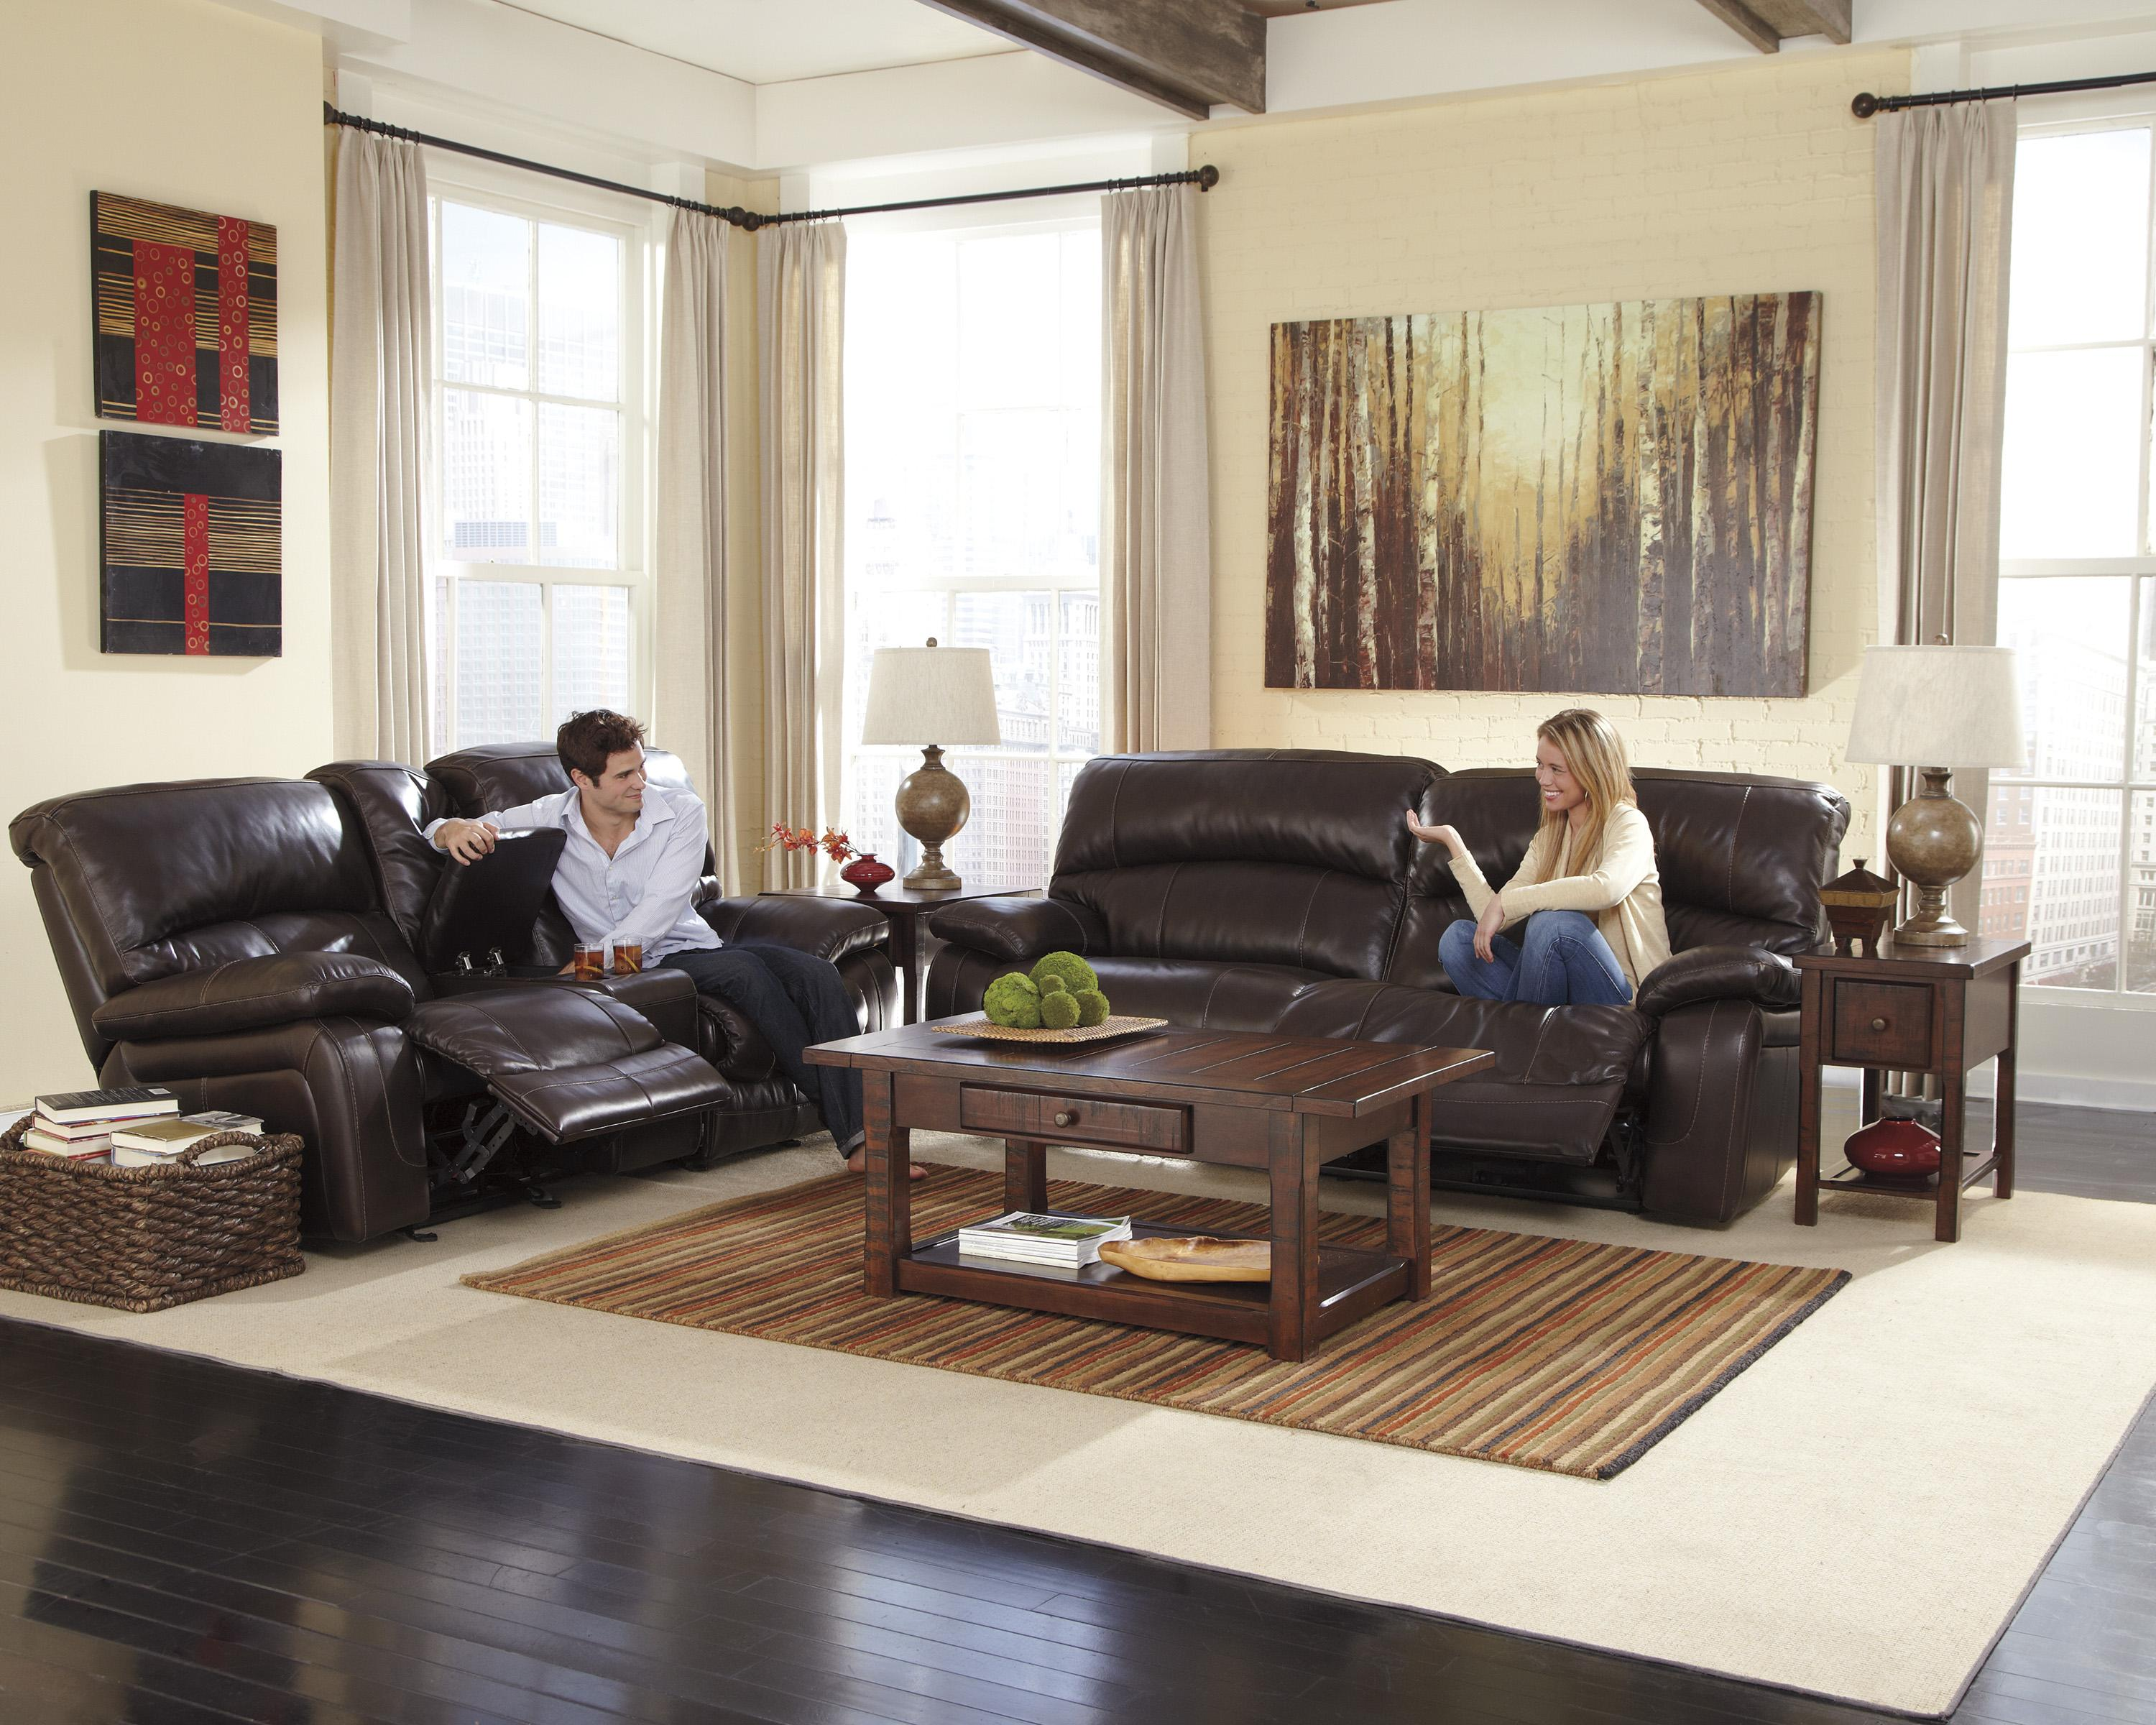 Leather Match 2 Seat Reclining Sofa By Signature Design By Ashley Wolf And Gardiner Wolf Furniture